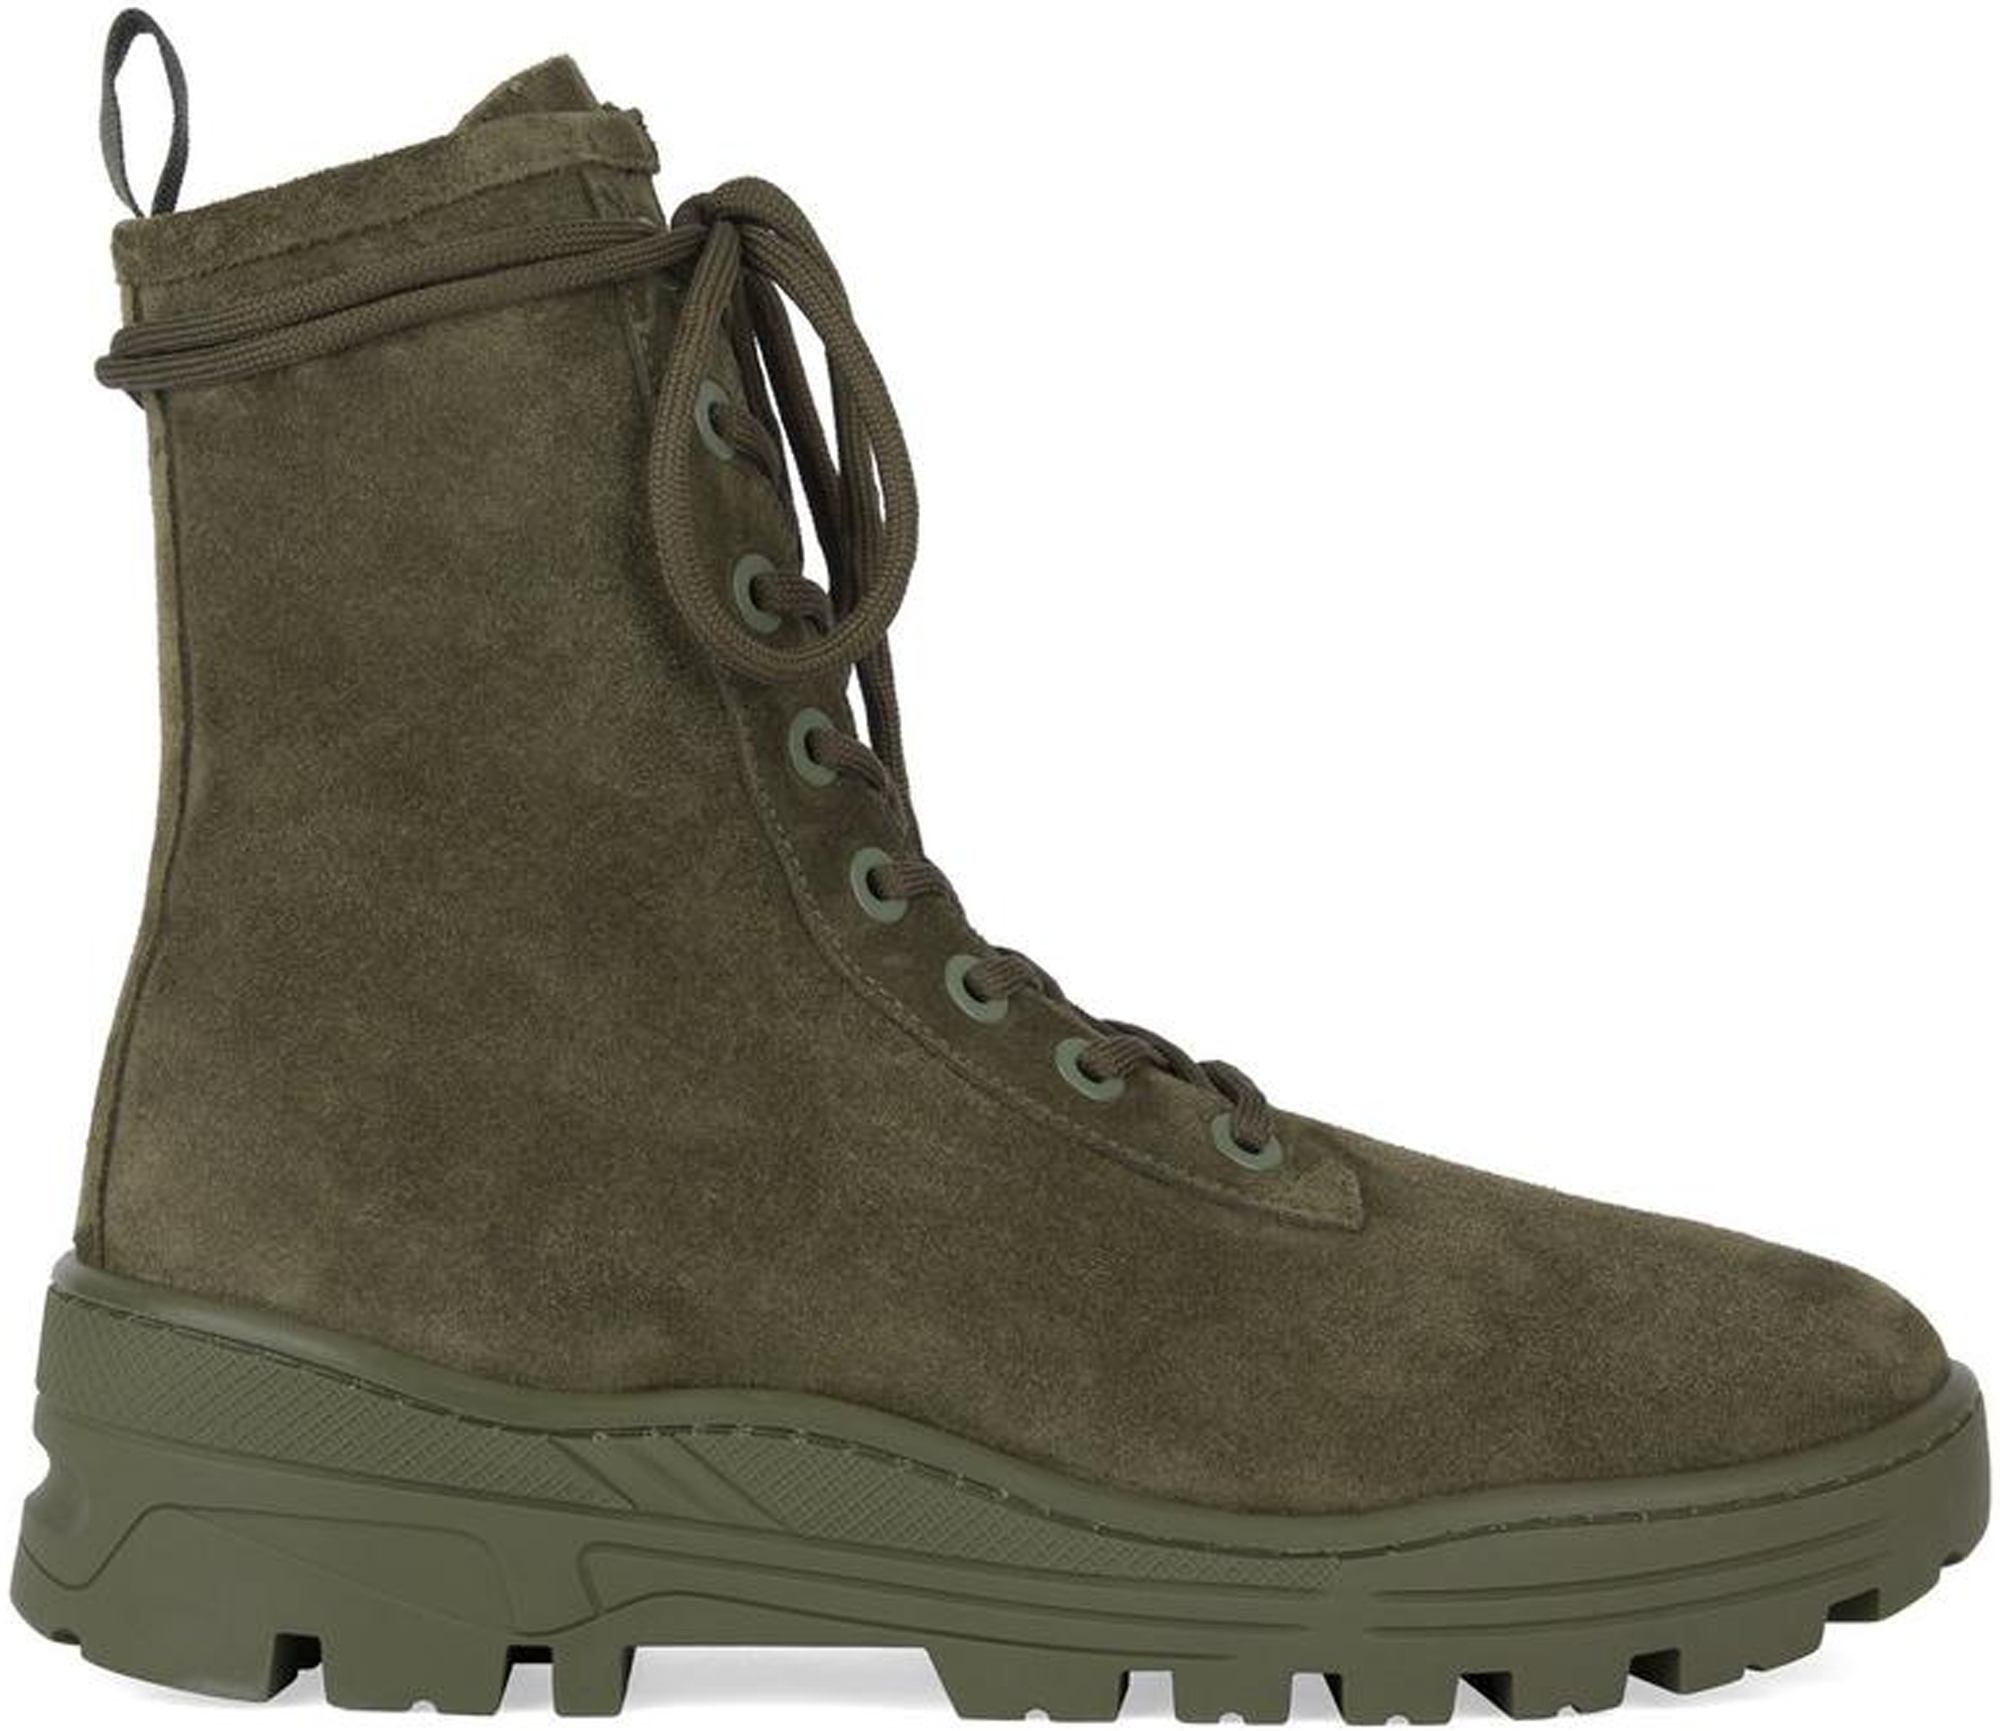 Yeezy Thick Suede Combat Boot Military